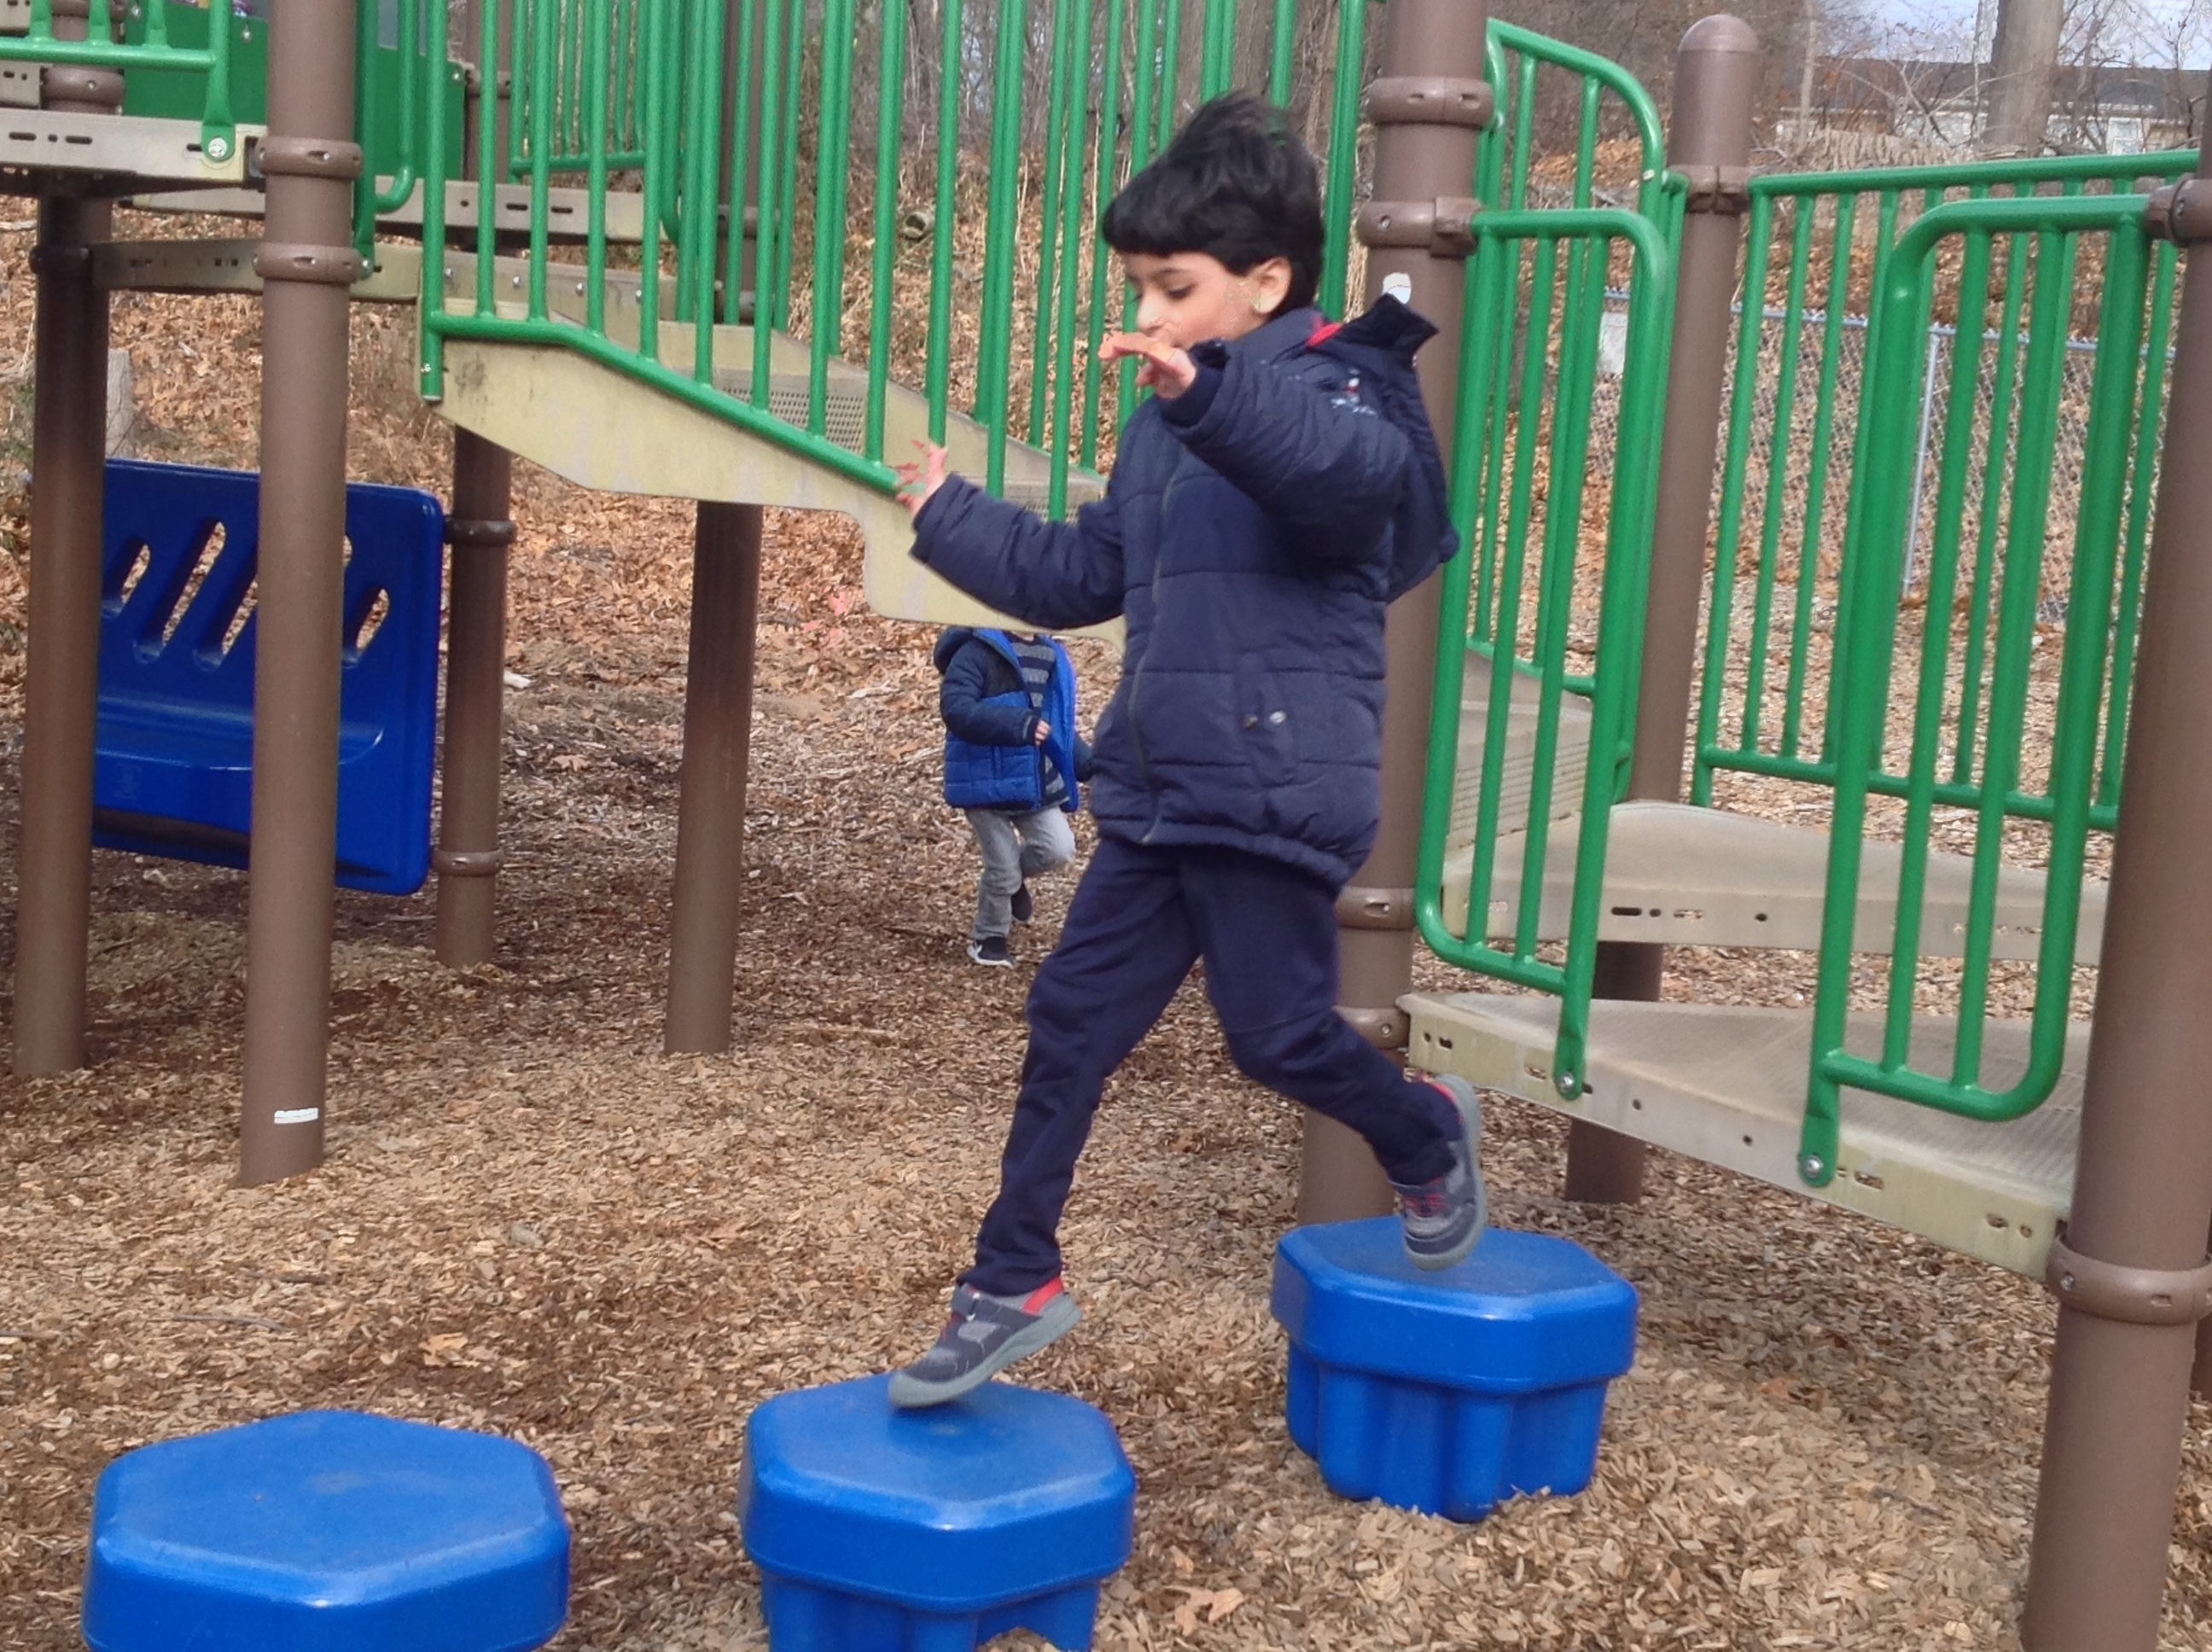 Student  at recess on playground.